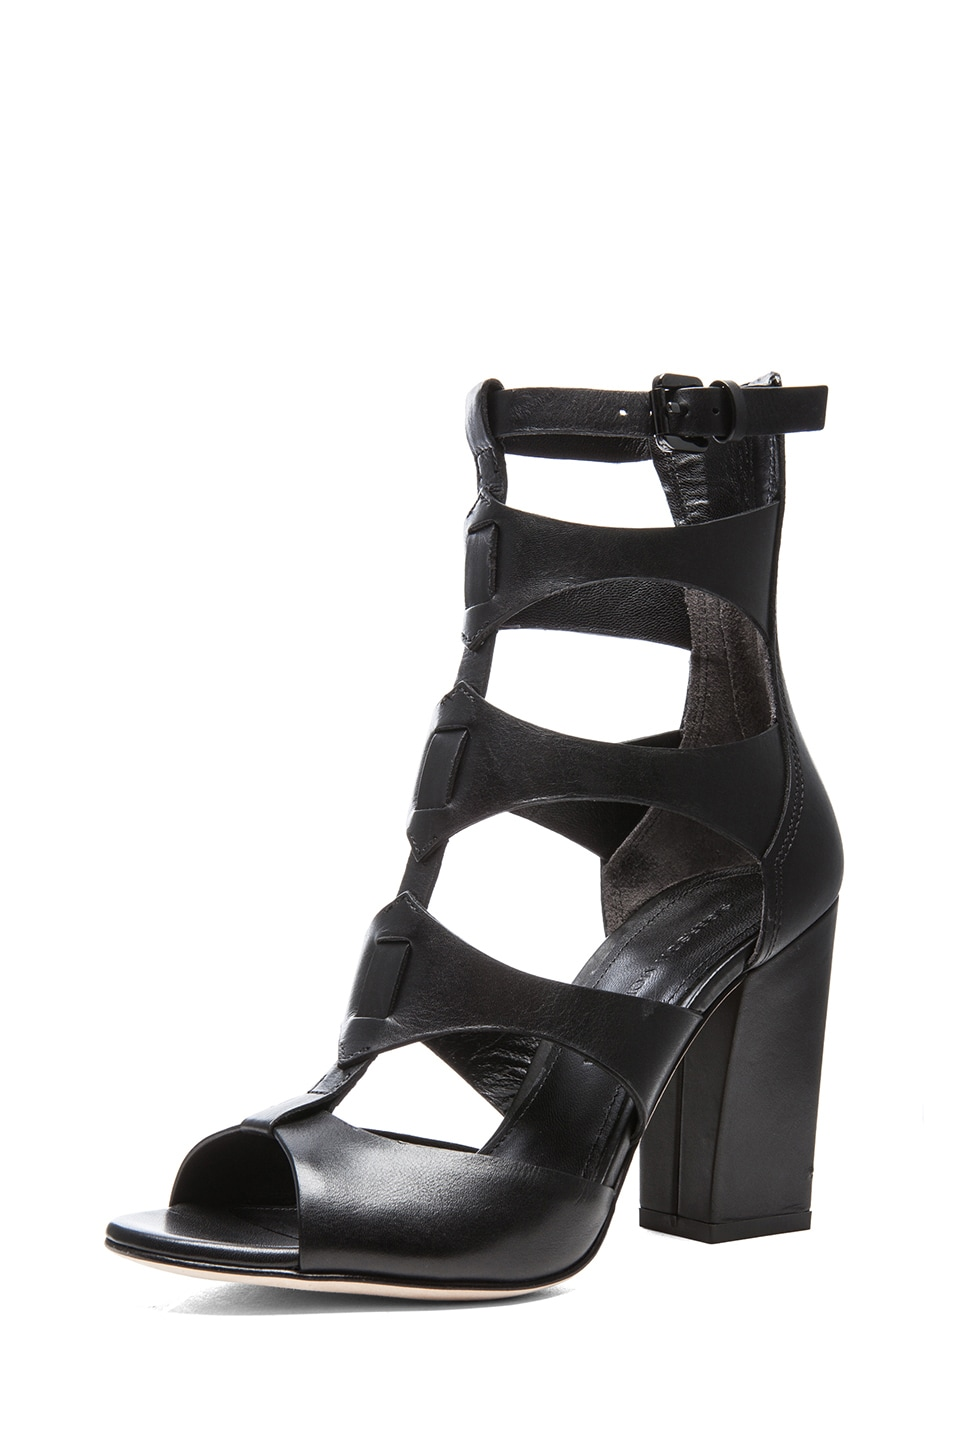 Image 2 of Sigerson Morrison Leather Vachael Heels in Black